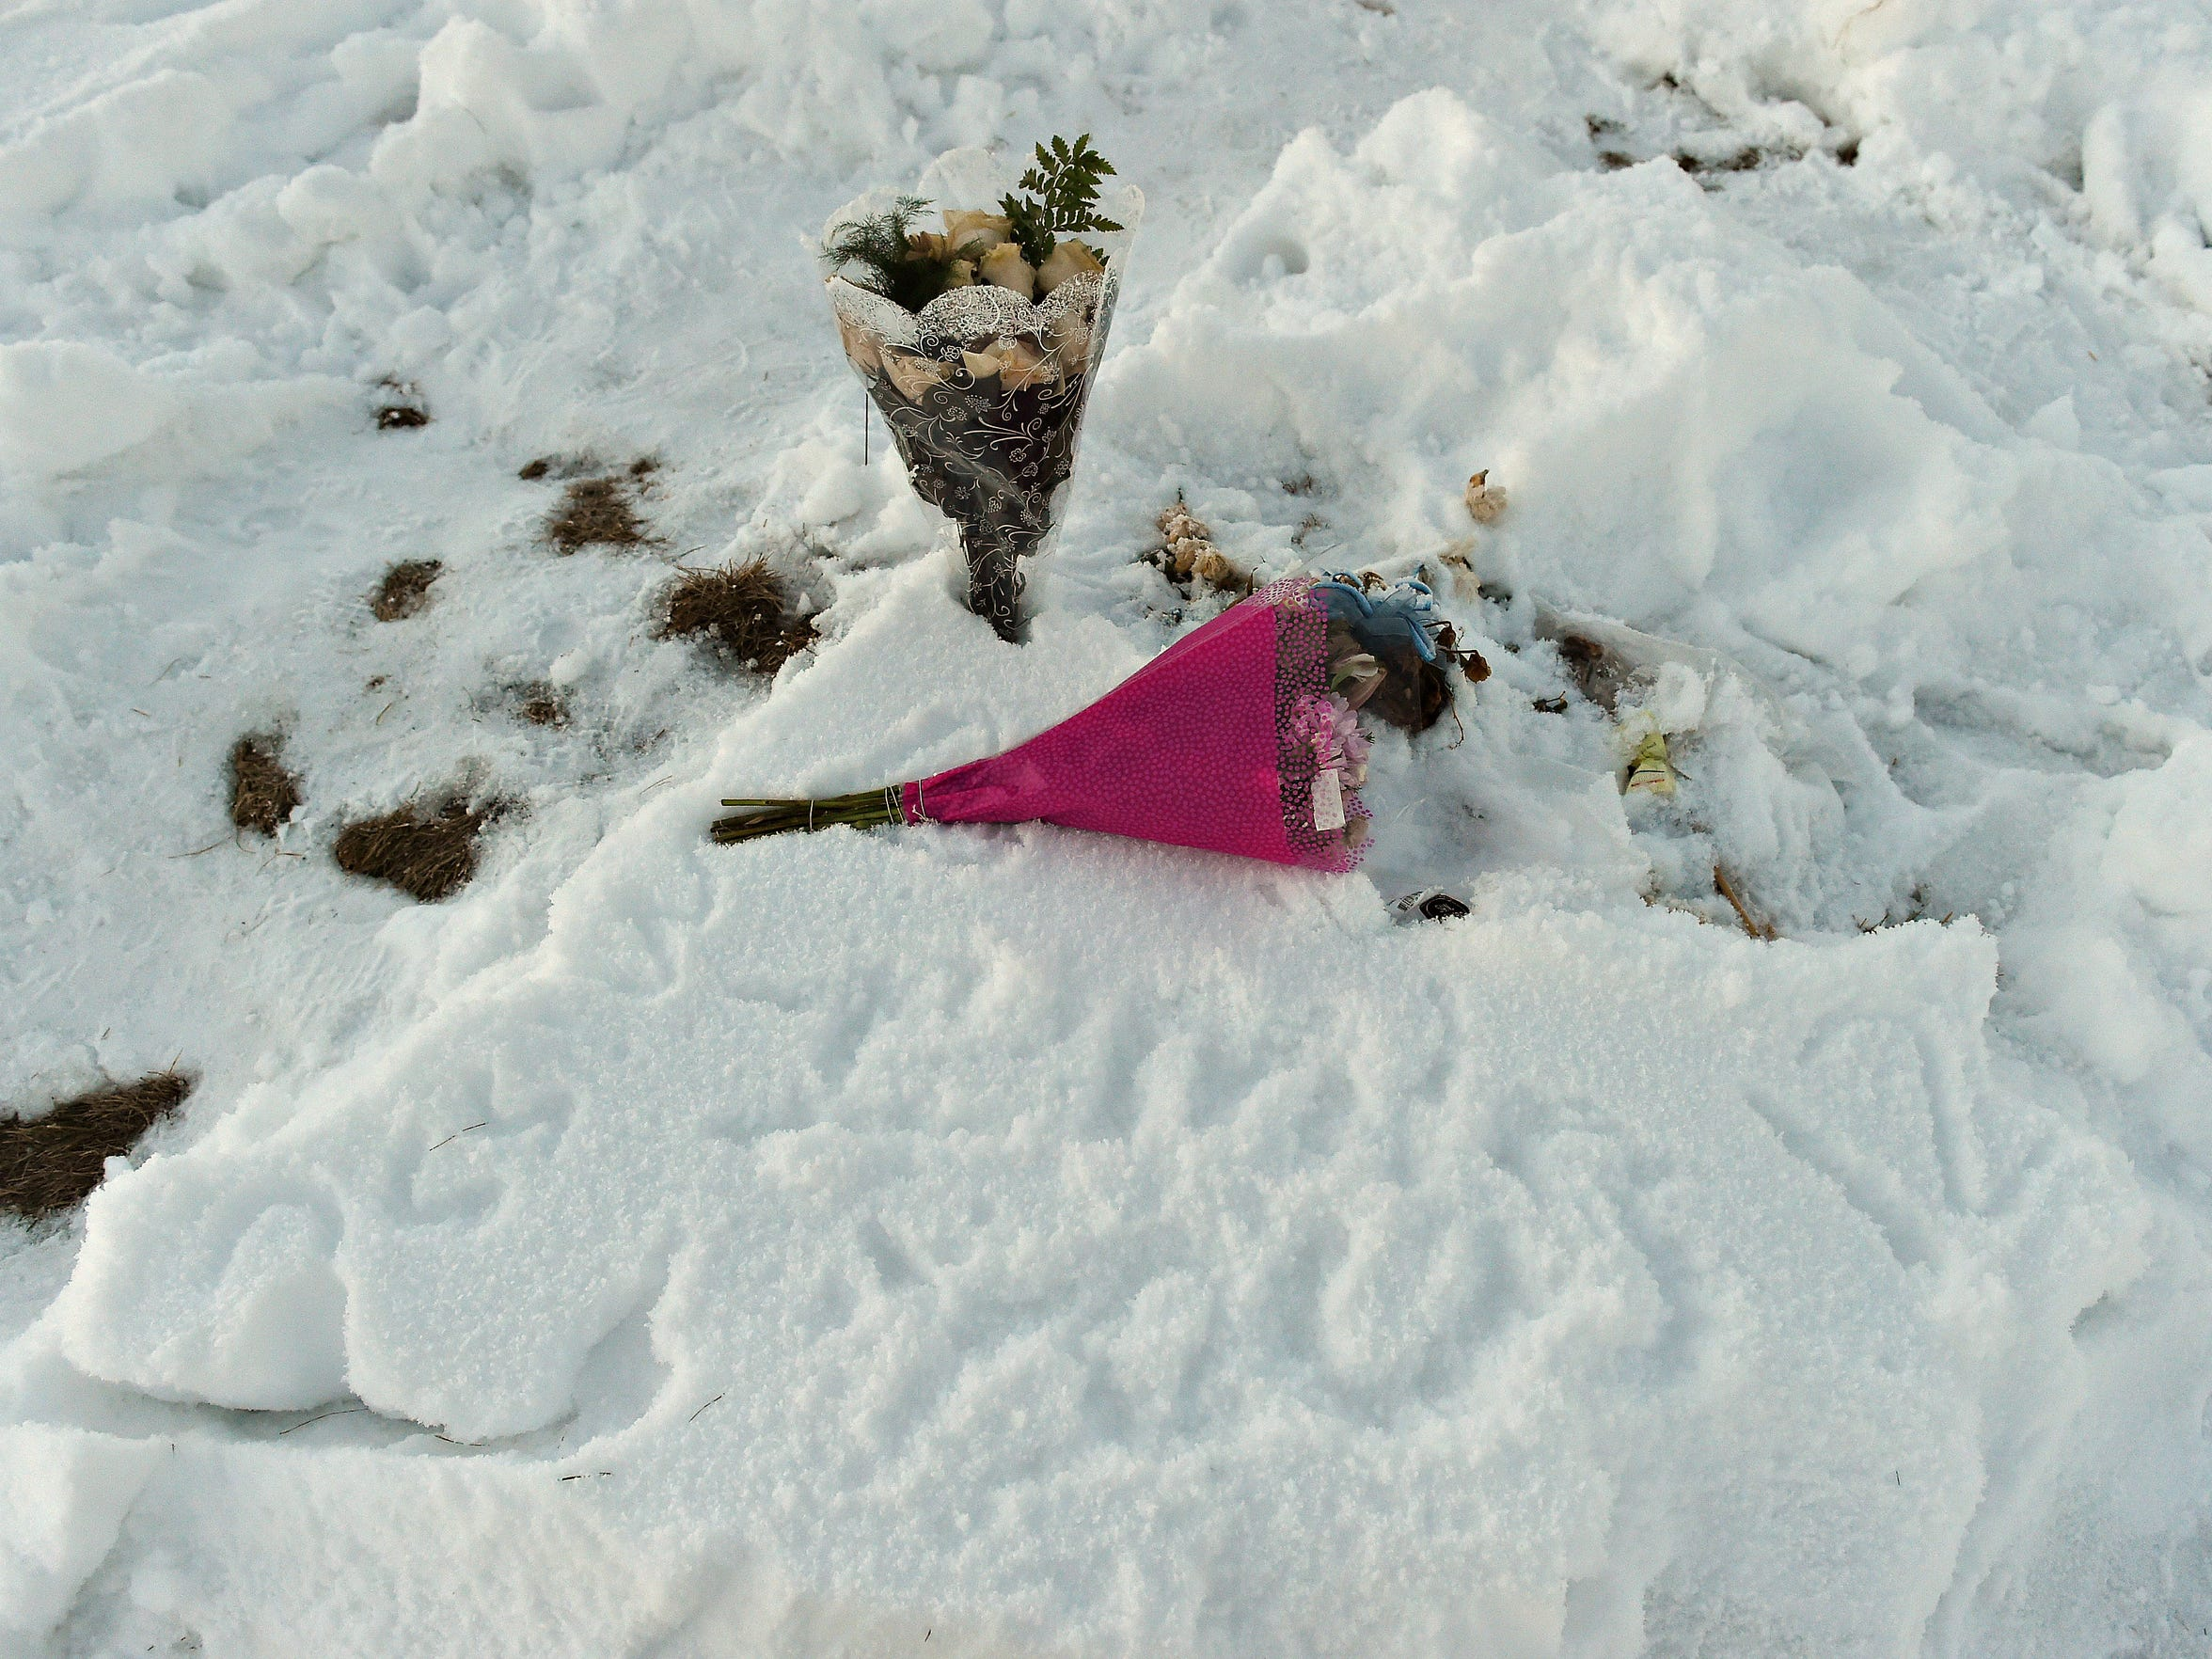 A small yellow flag and flowers mark Ariana Cordova's grave. Her family recently visited the grave on what would have been her 12th birthday.